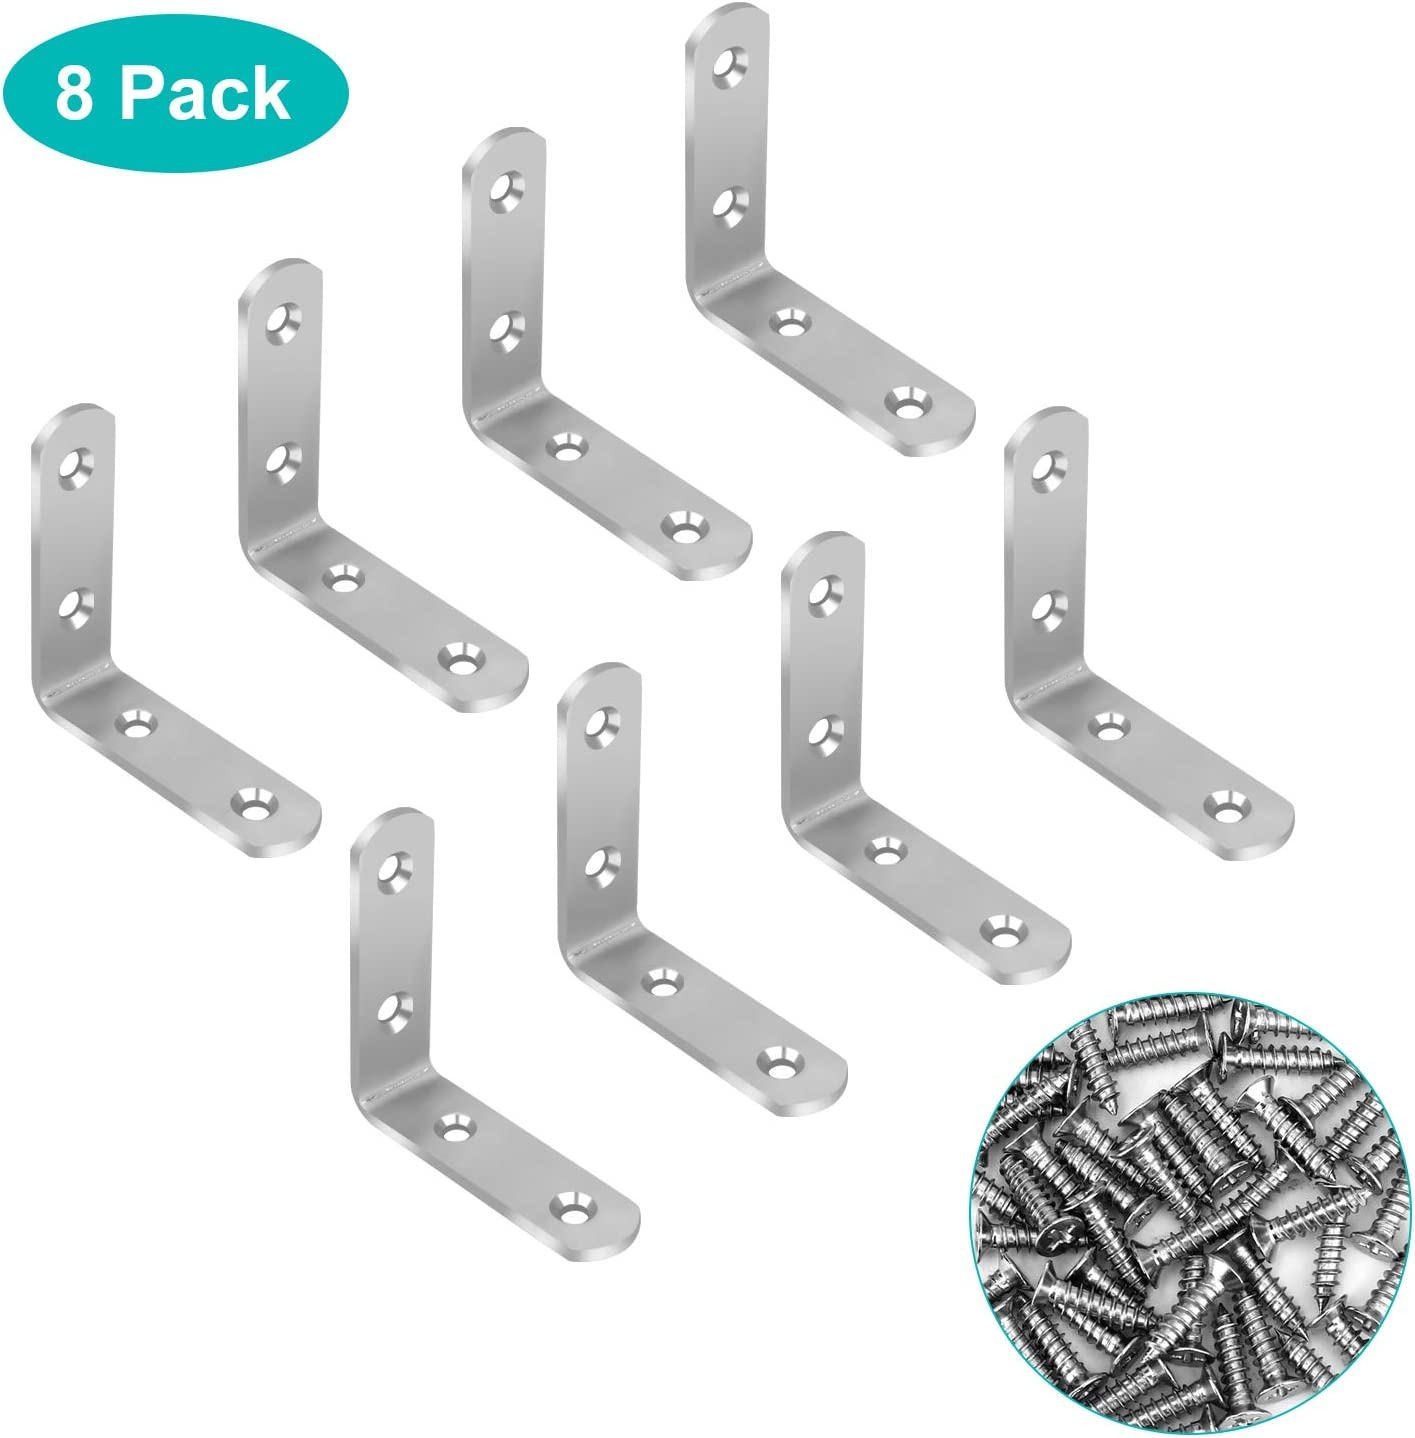 Stainless Steel 90° Right Brace Corner Joint Angle Bracket Bed Cabinet Fastener